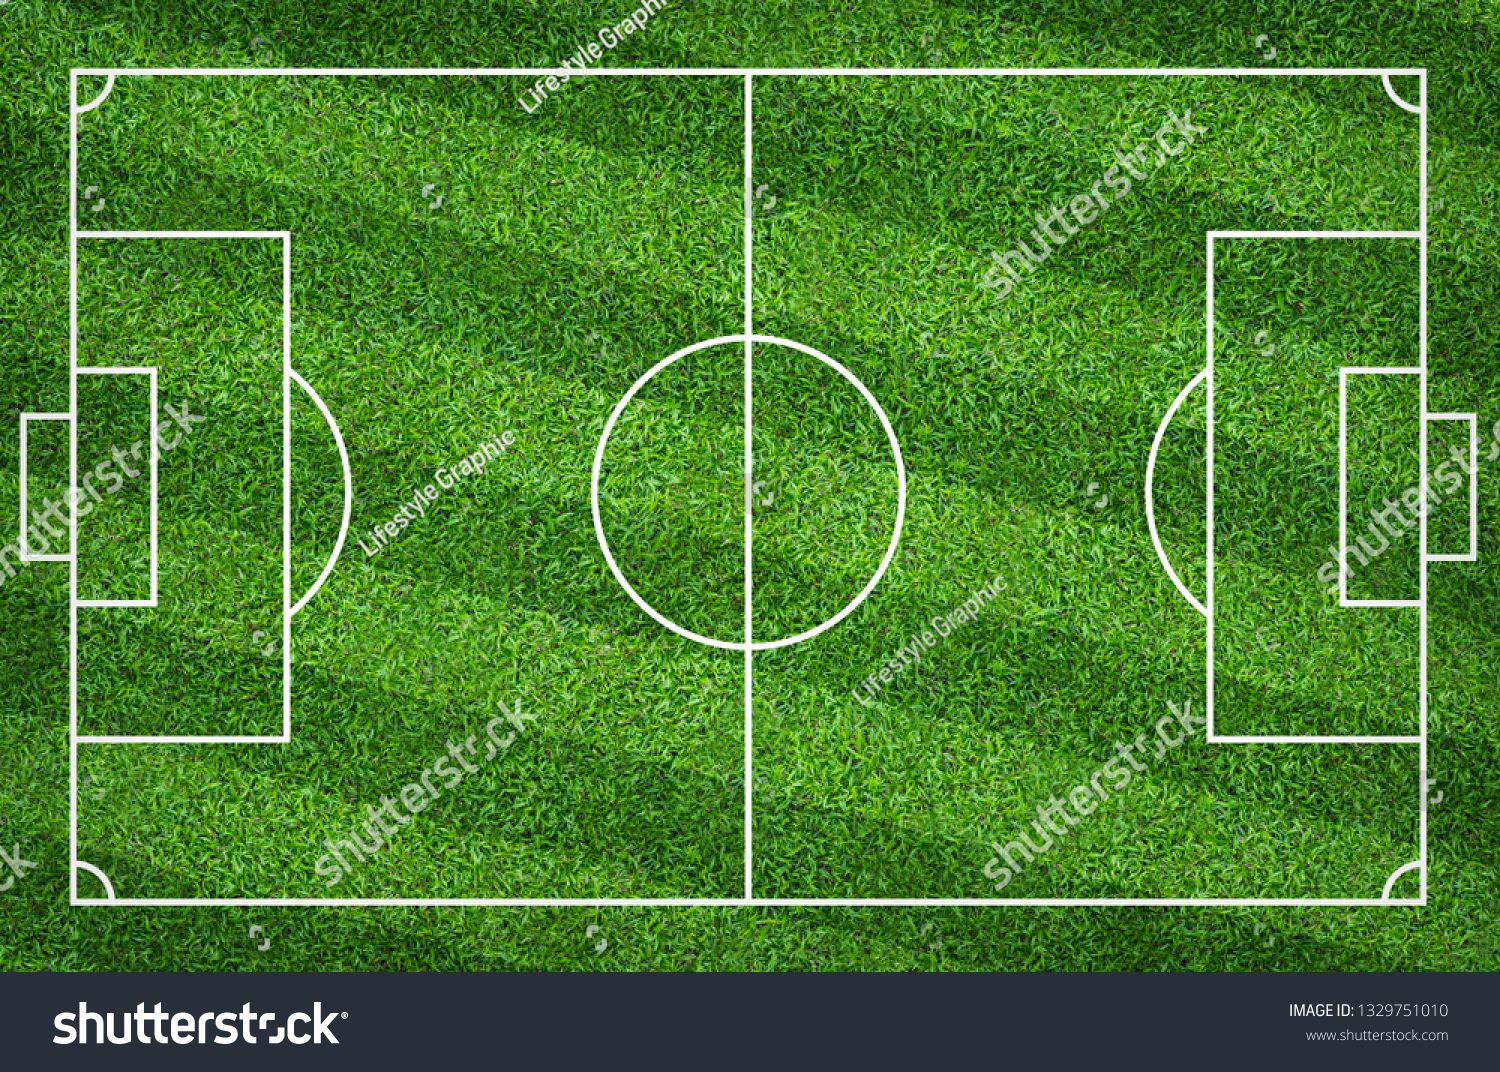 Football Field Or Soccer Field For Background Green Lawn Court For Create Sport Game Ad Sponsored Background Green So Soccer Field Football Field Field